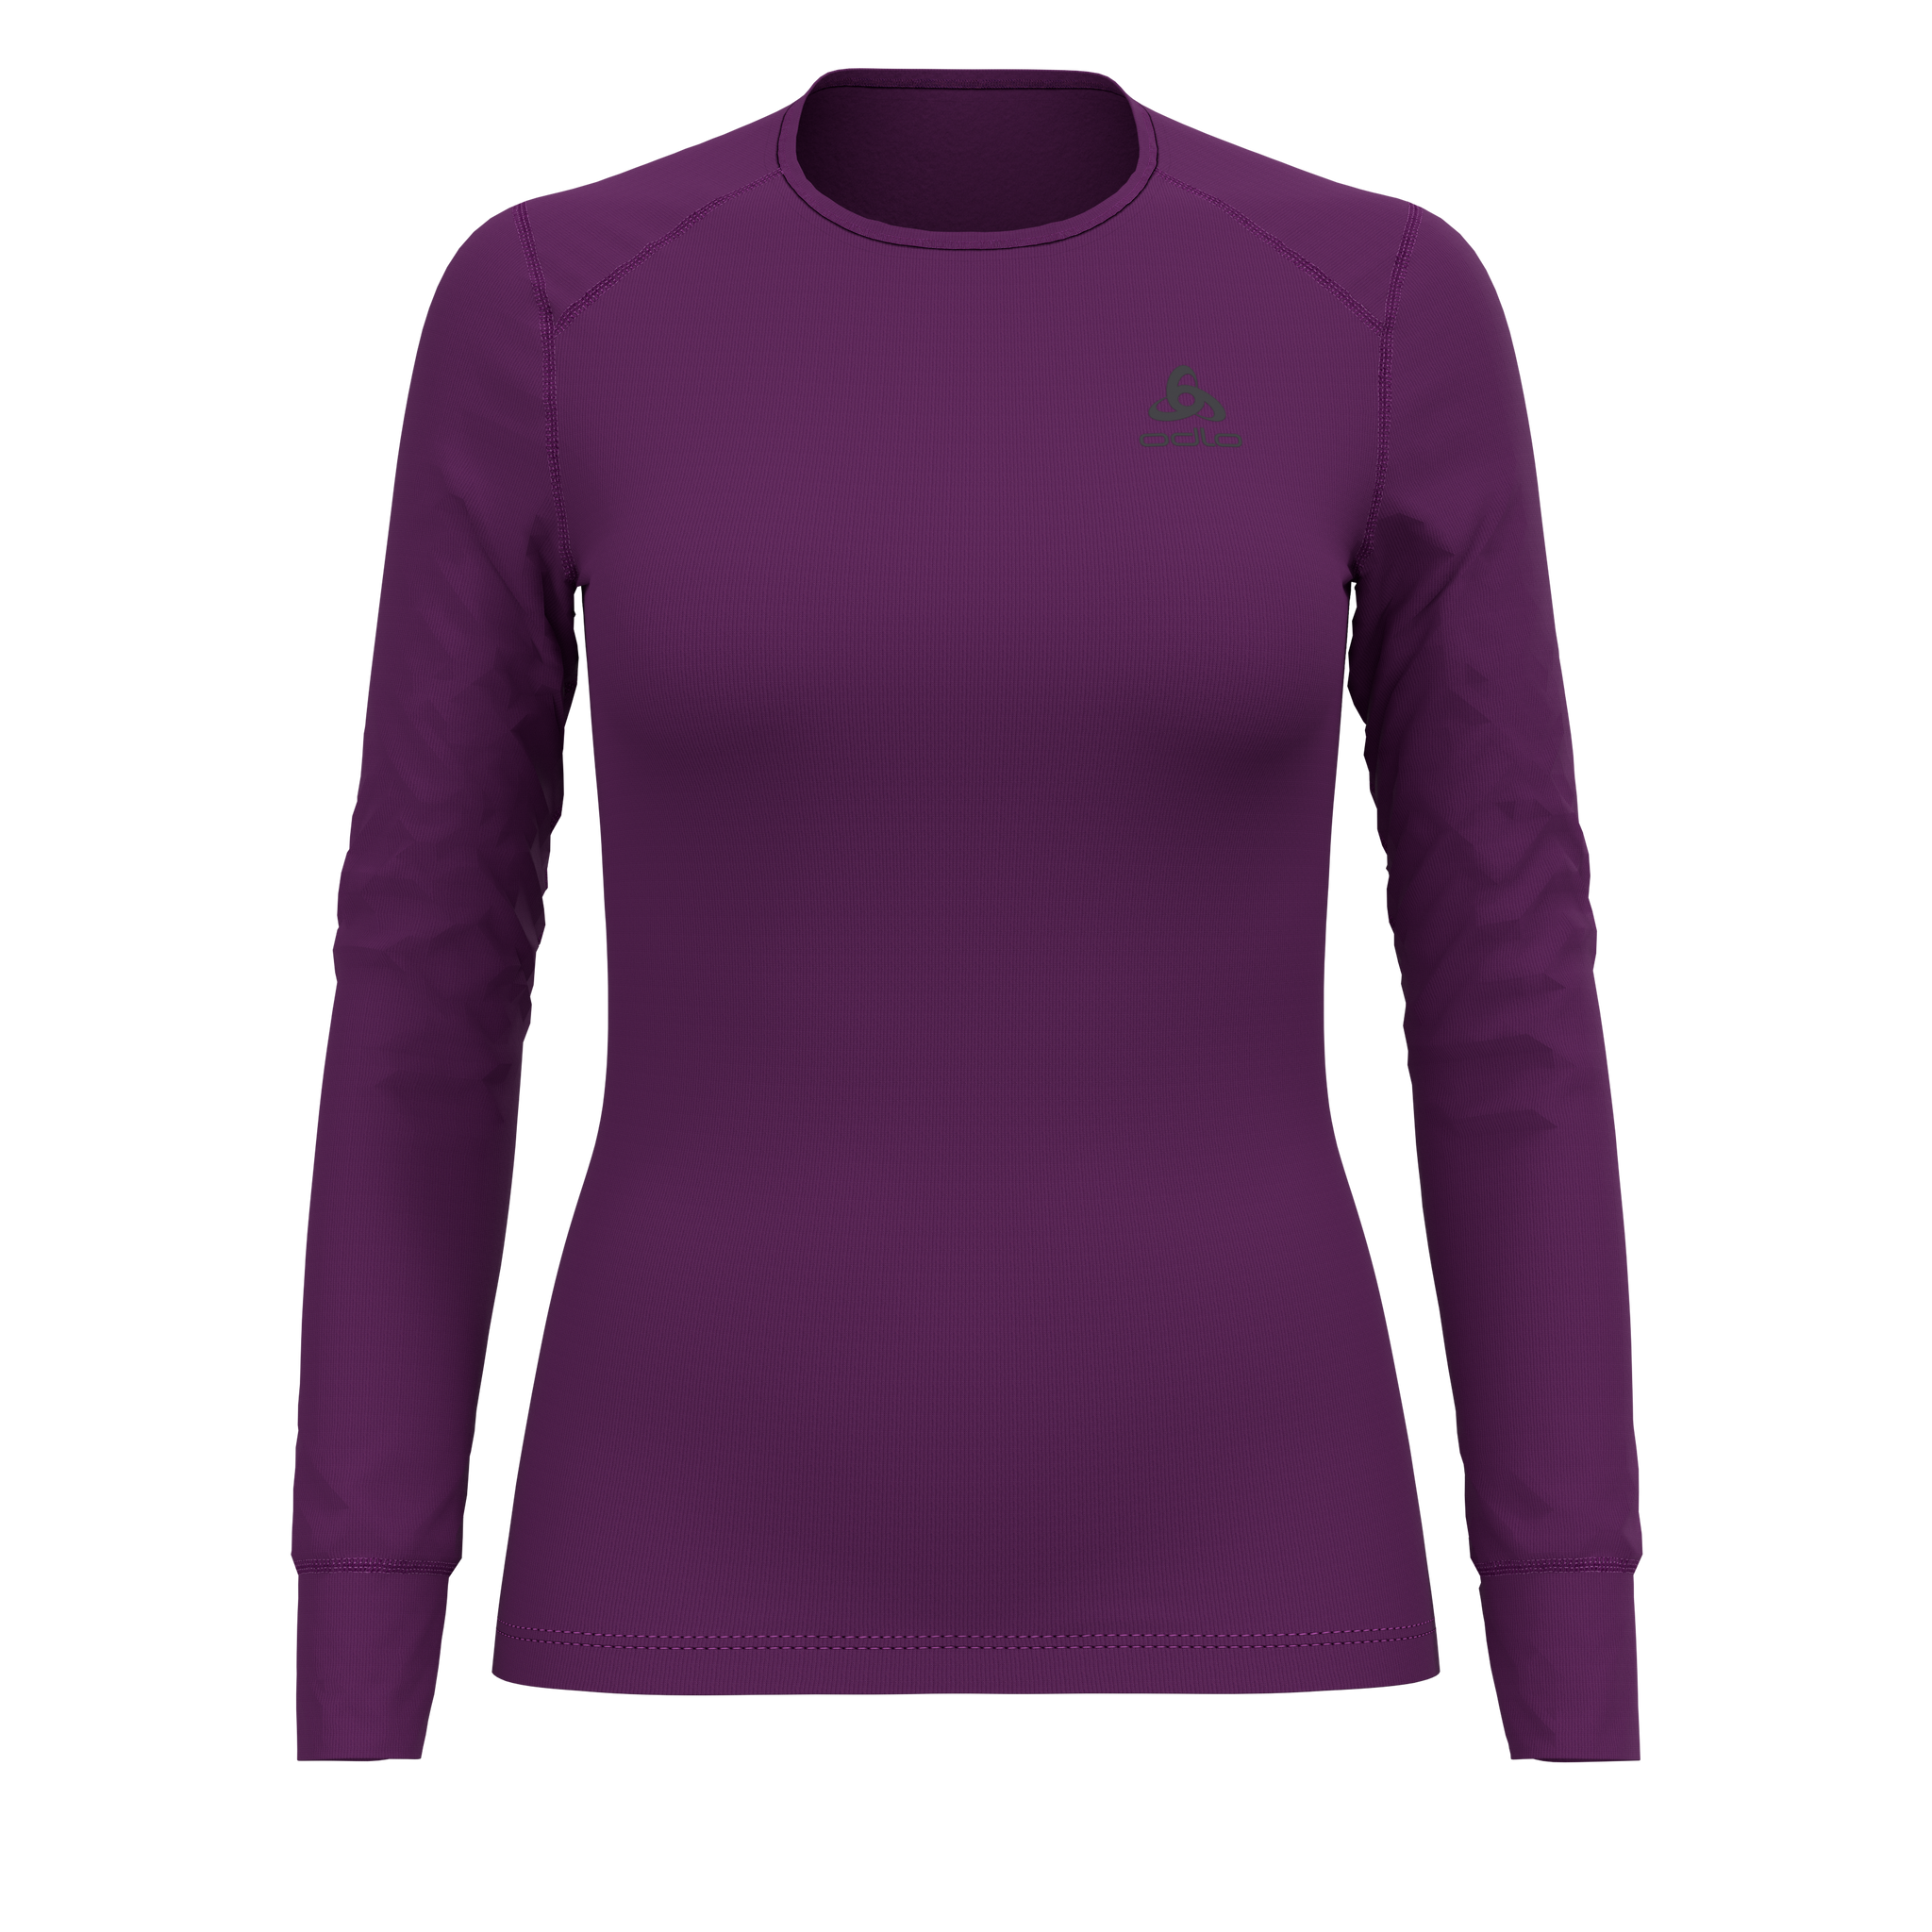 Odlo Women's ACTIVE WARM ECO Long-Sleeve Baselayer Top